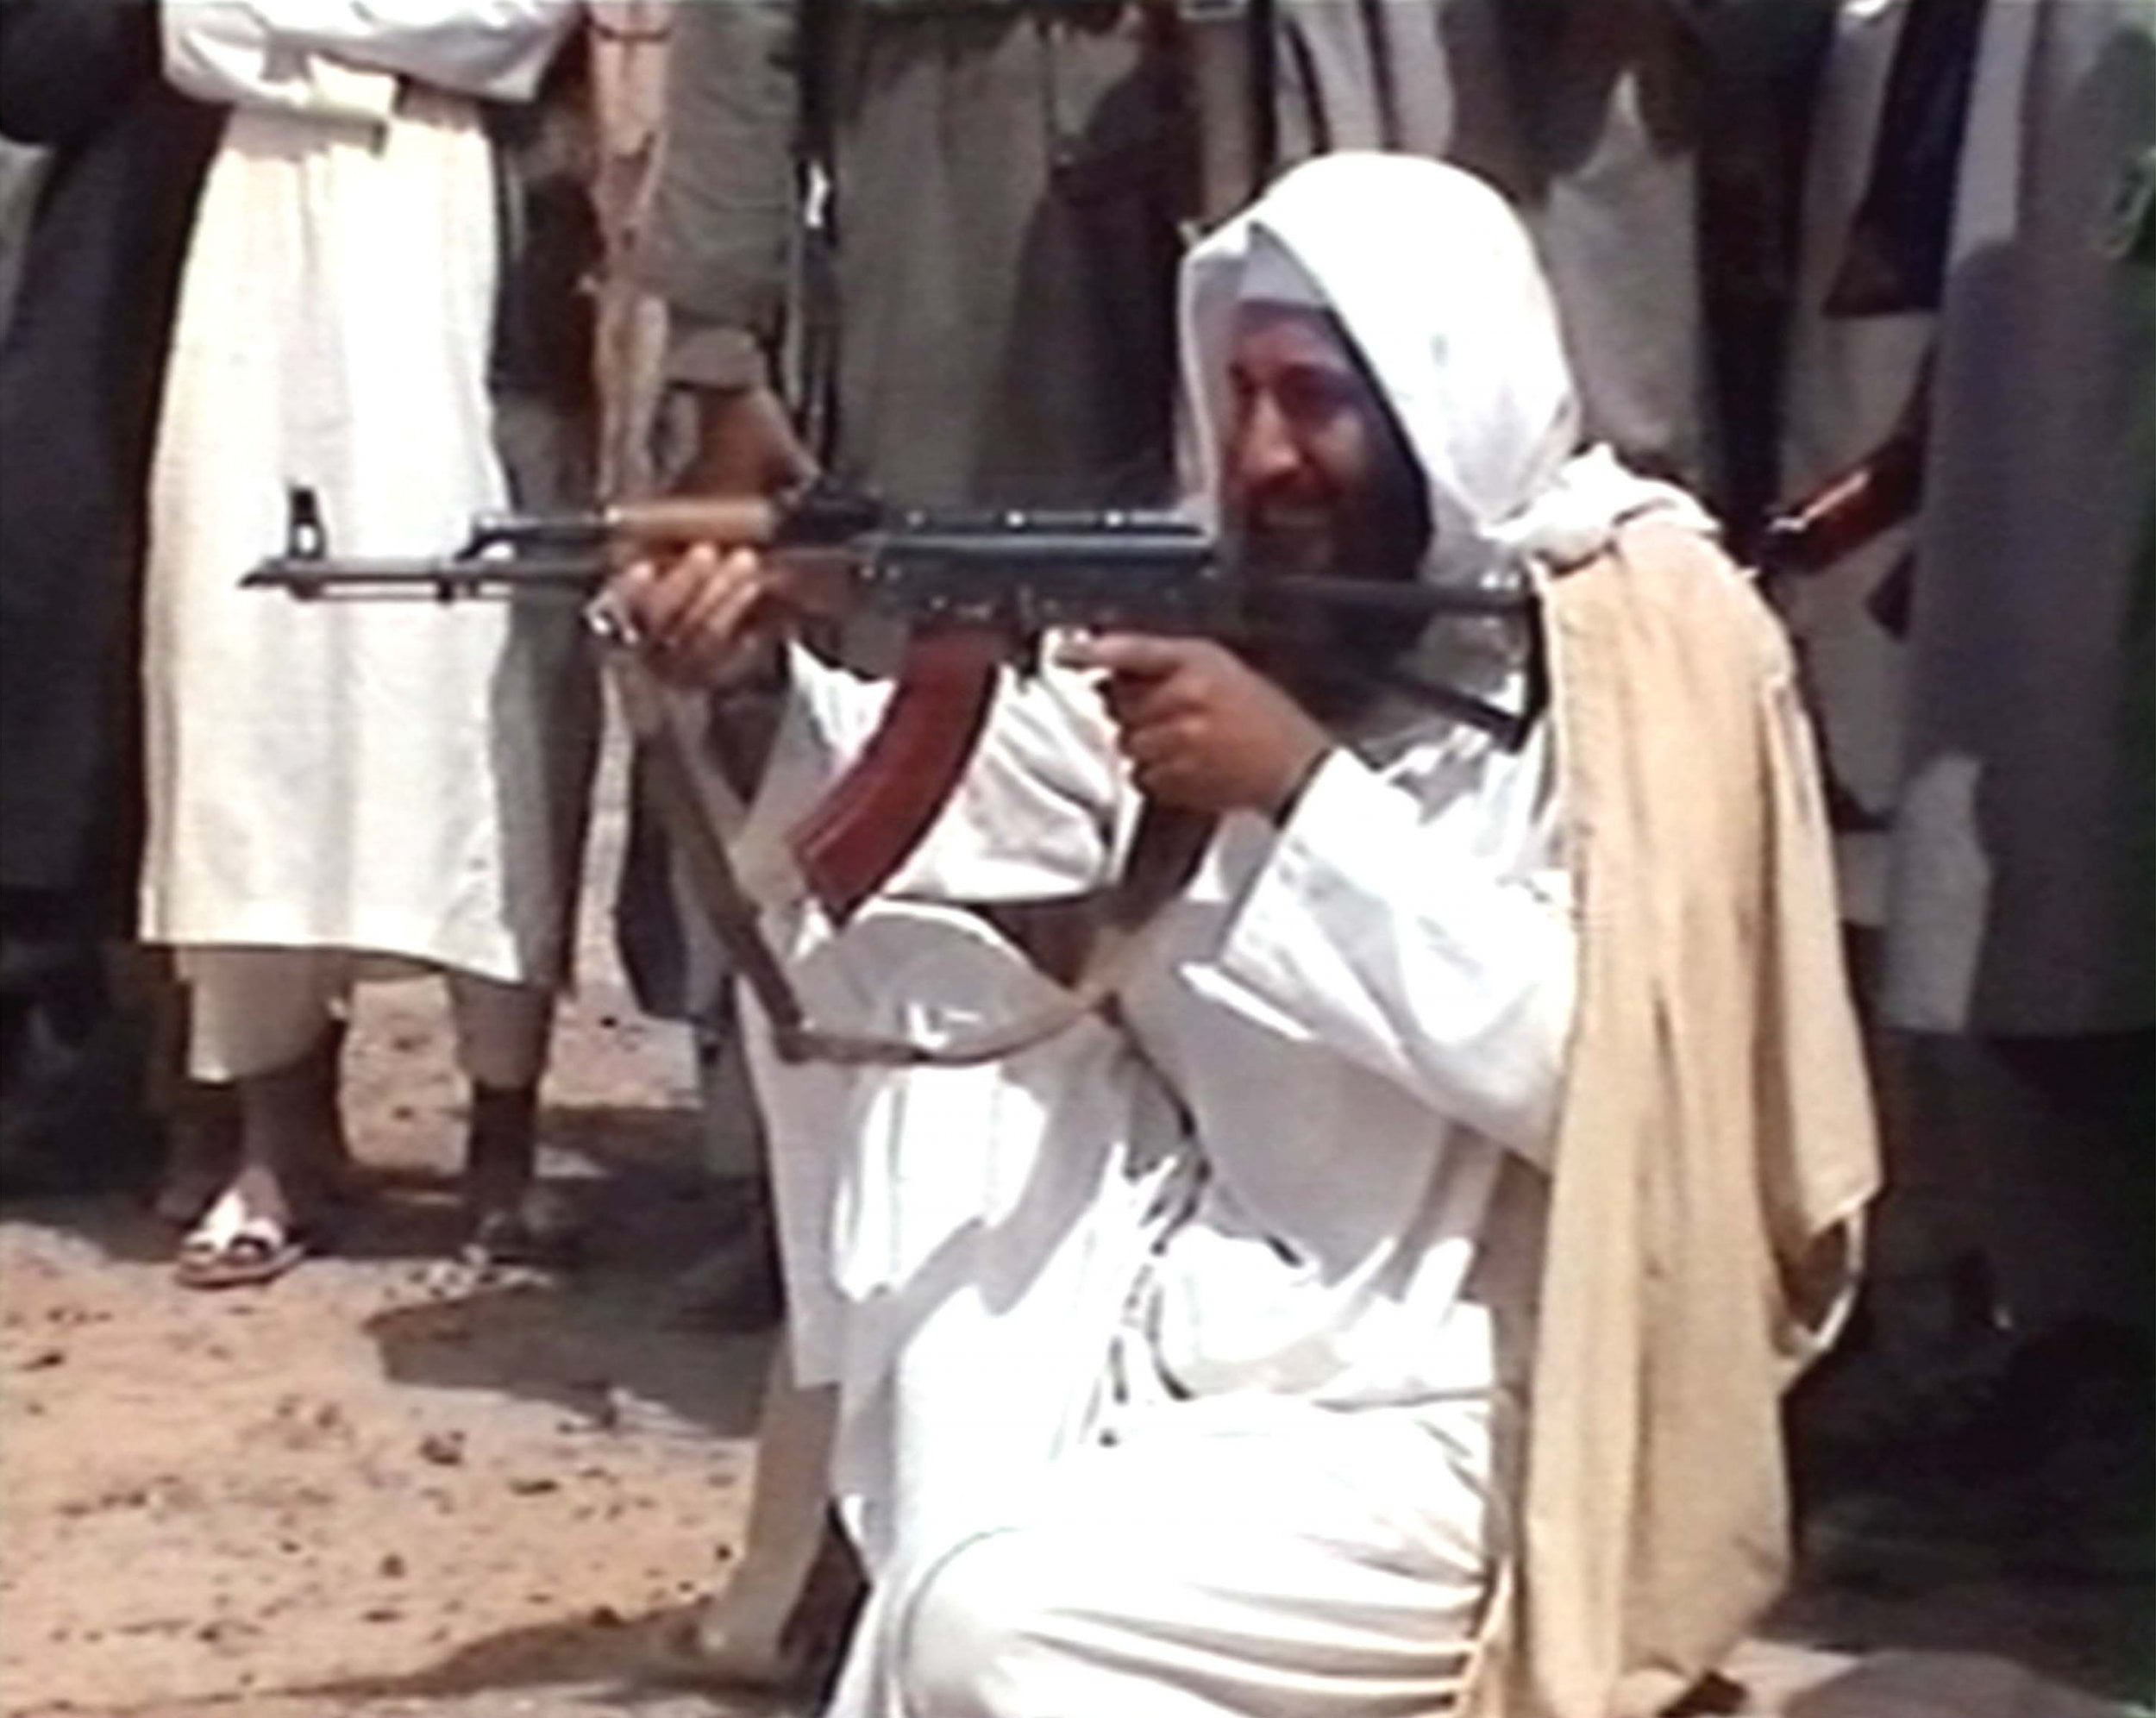 Terrorist Osama Bin Laden with ak-47